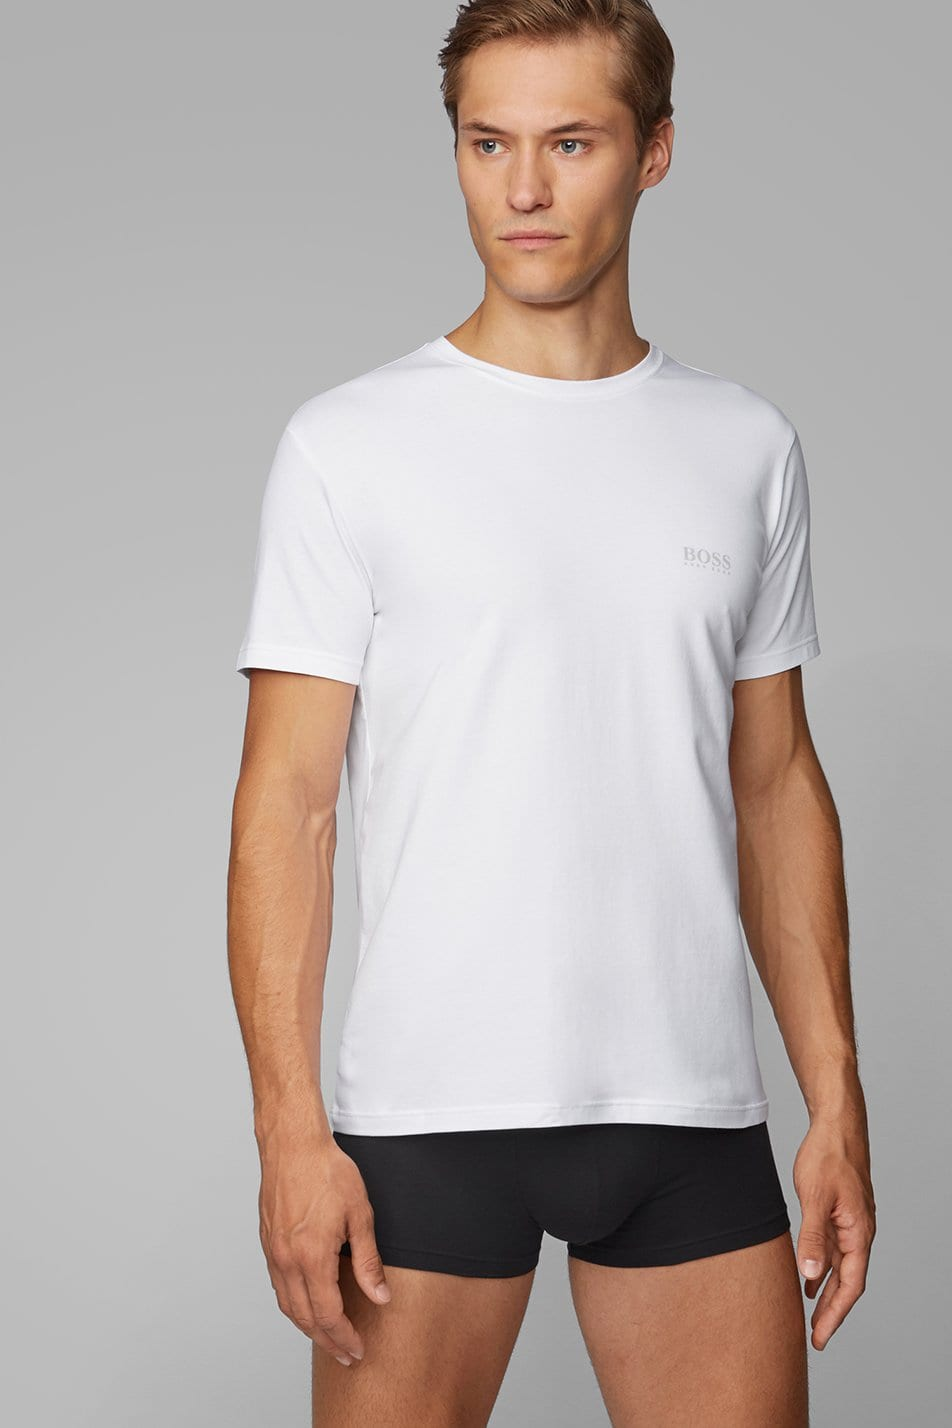 BOSS 2 Pack Regular Fit T-Shirt